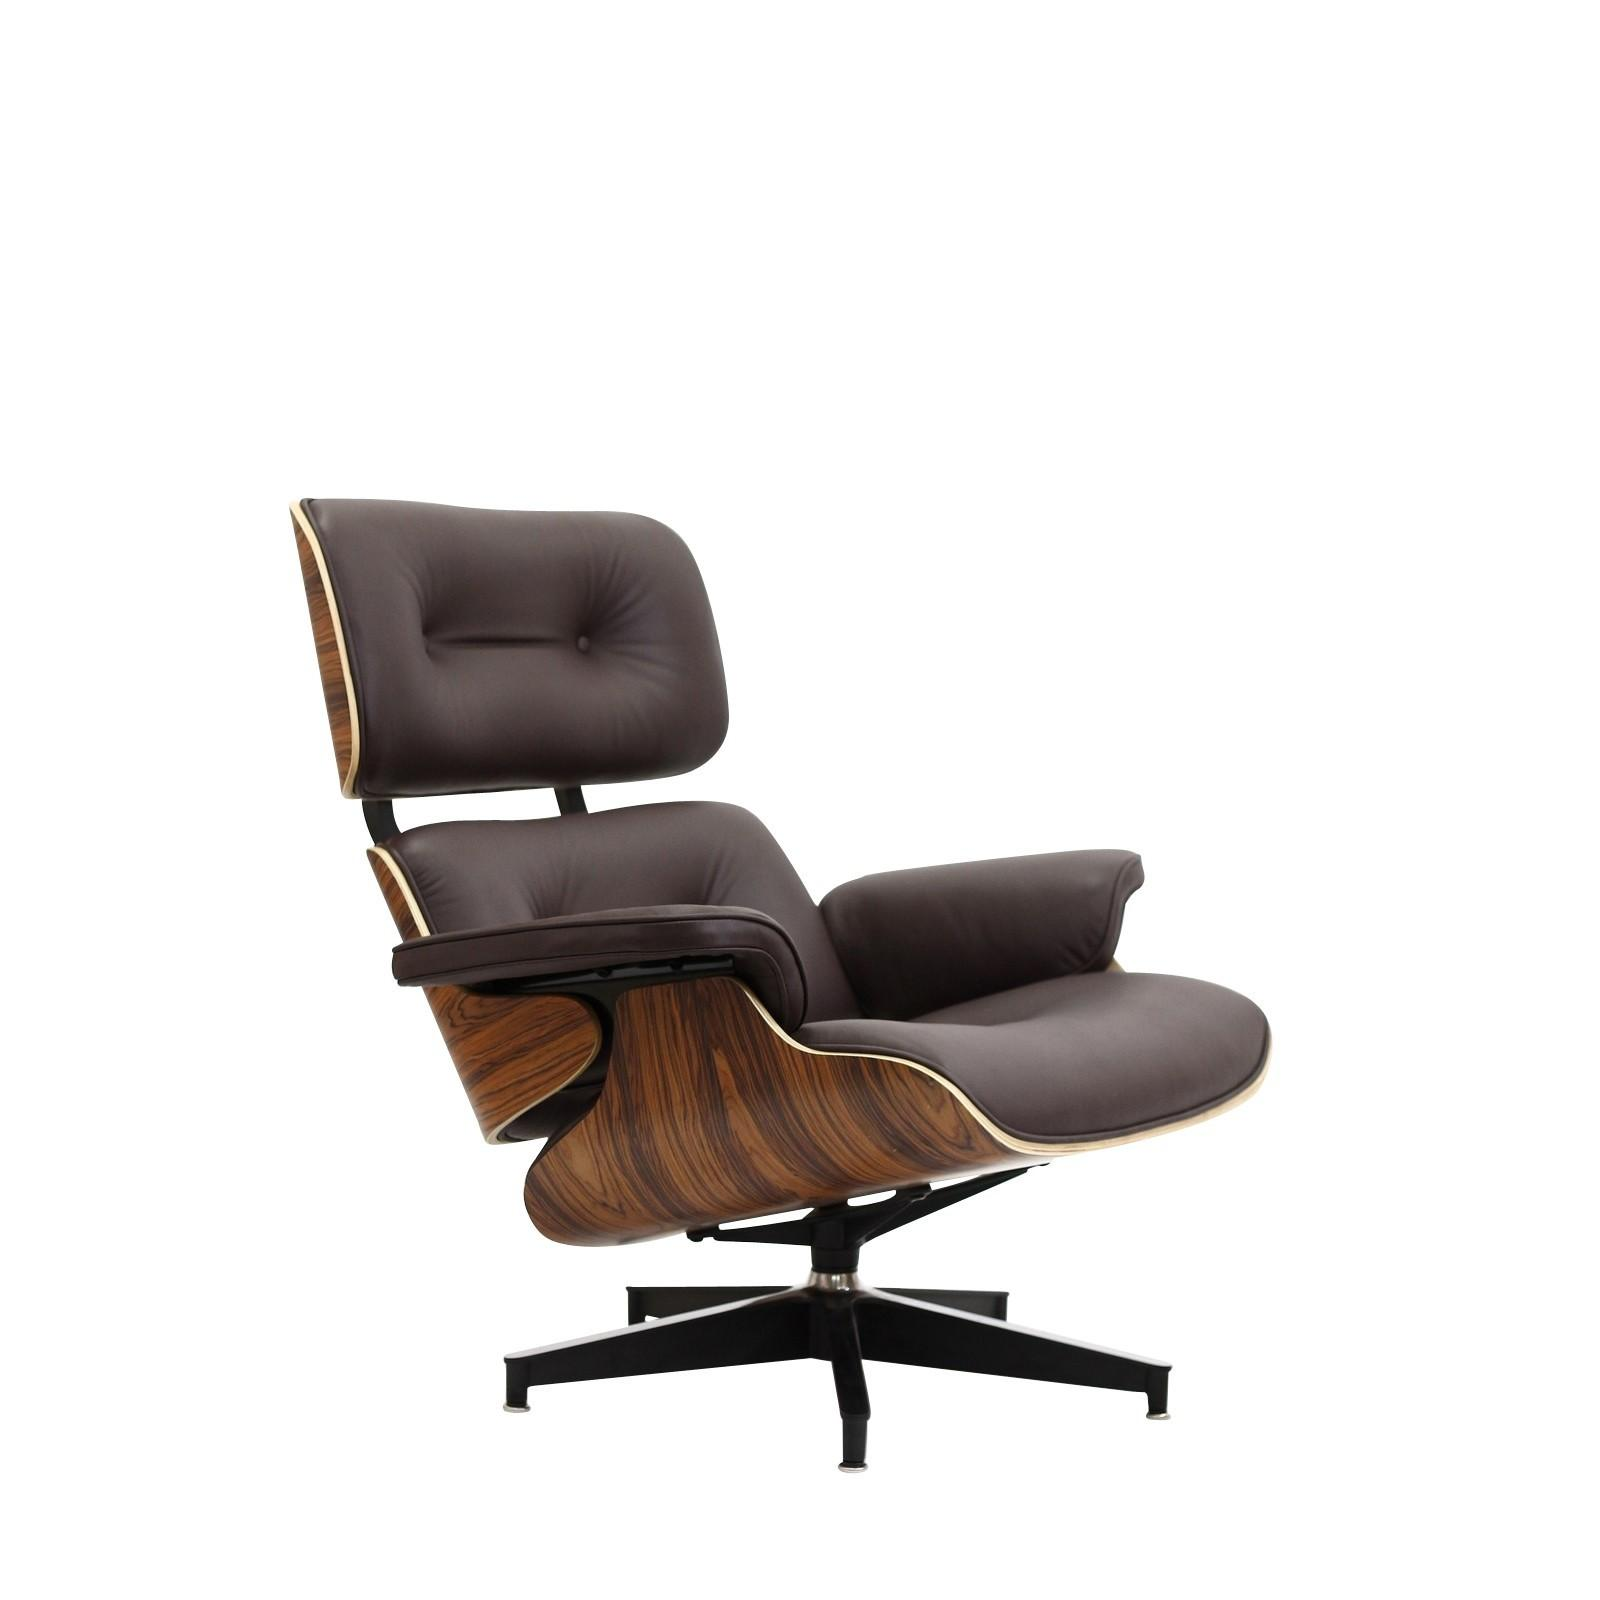 Eames Lounge Chair Wood Made Brandmadetv